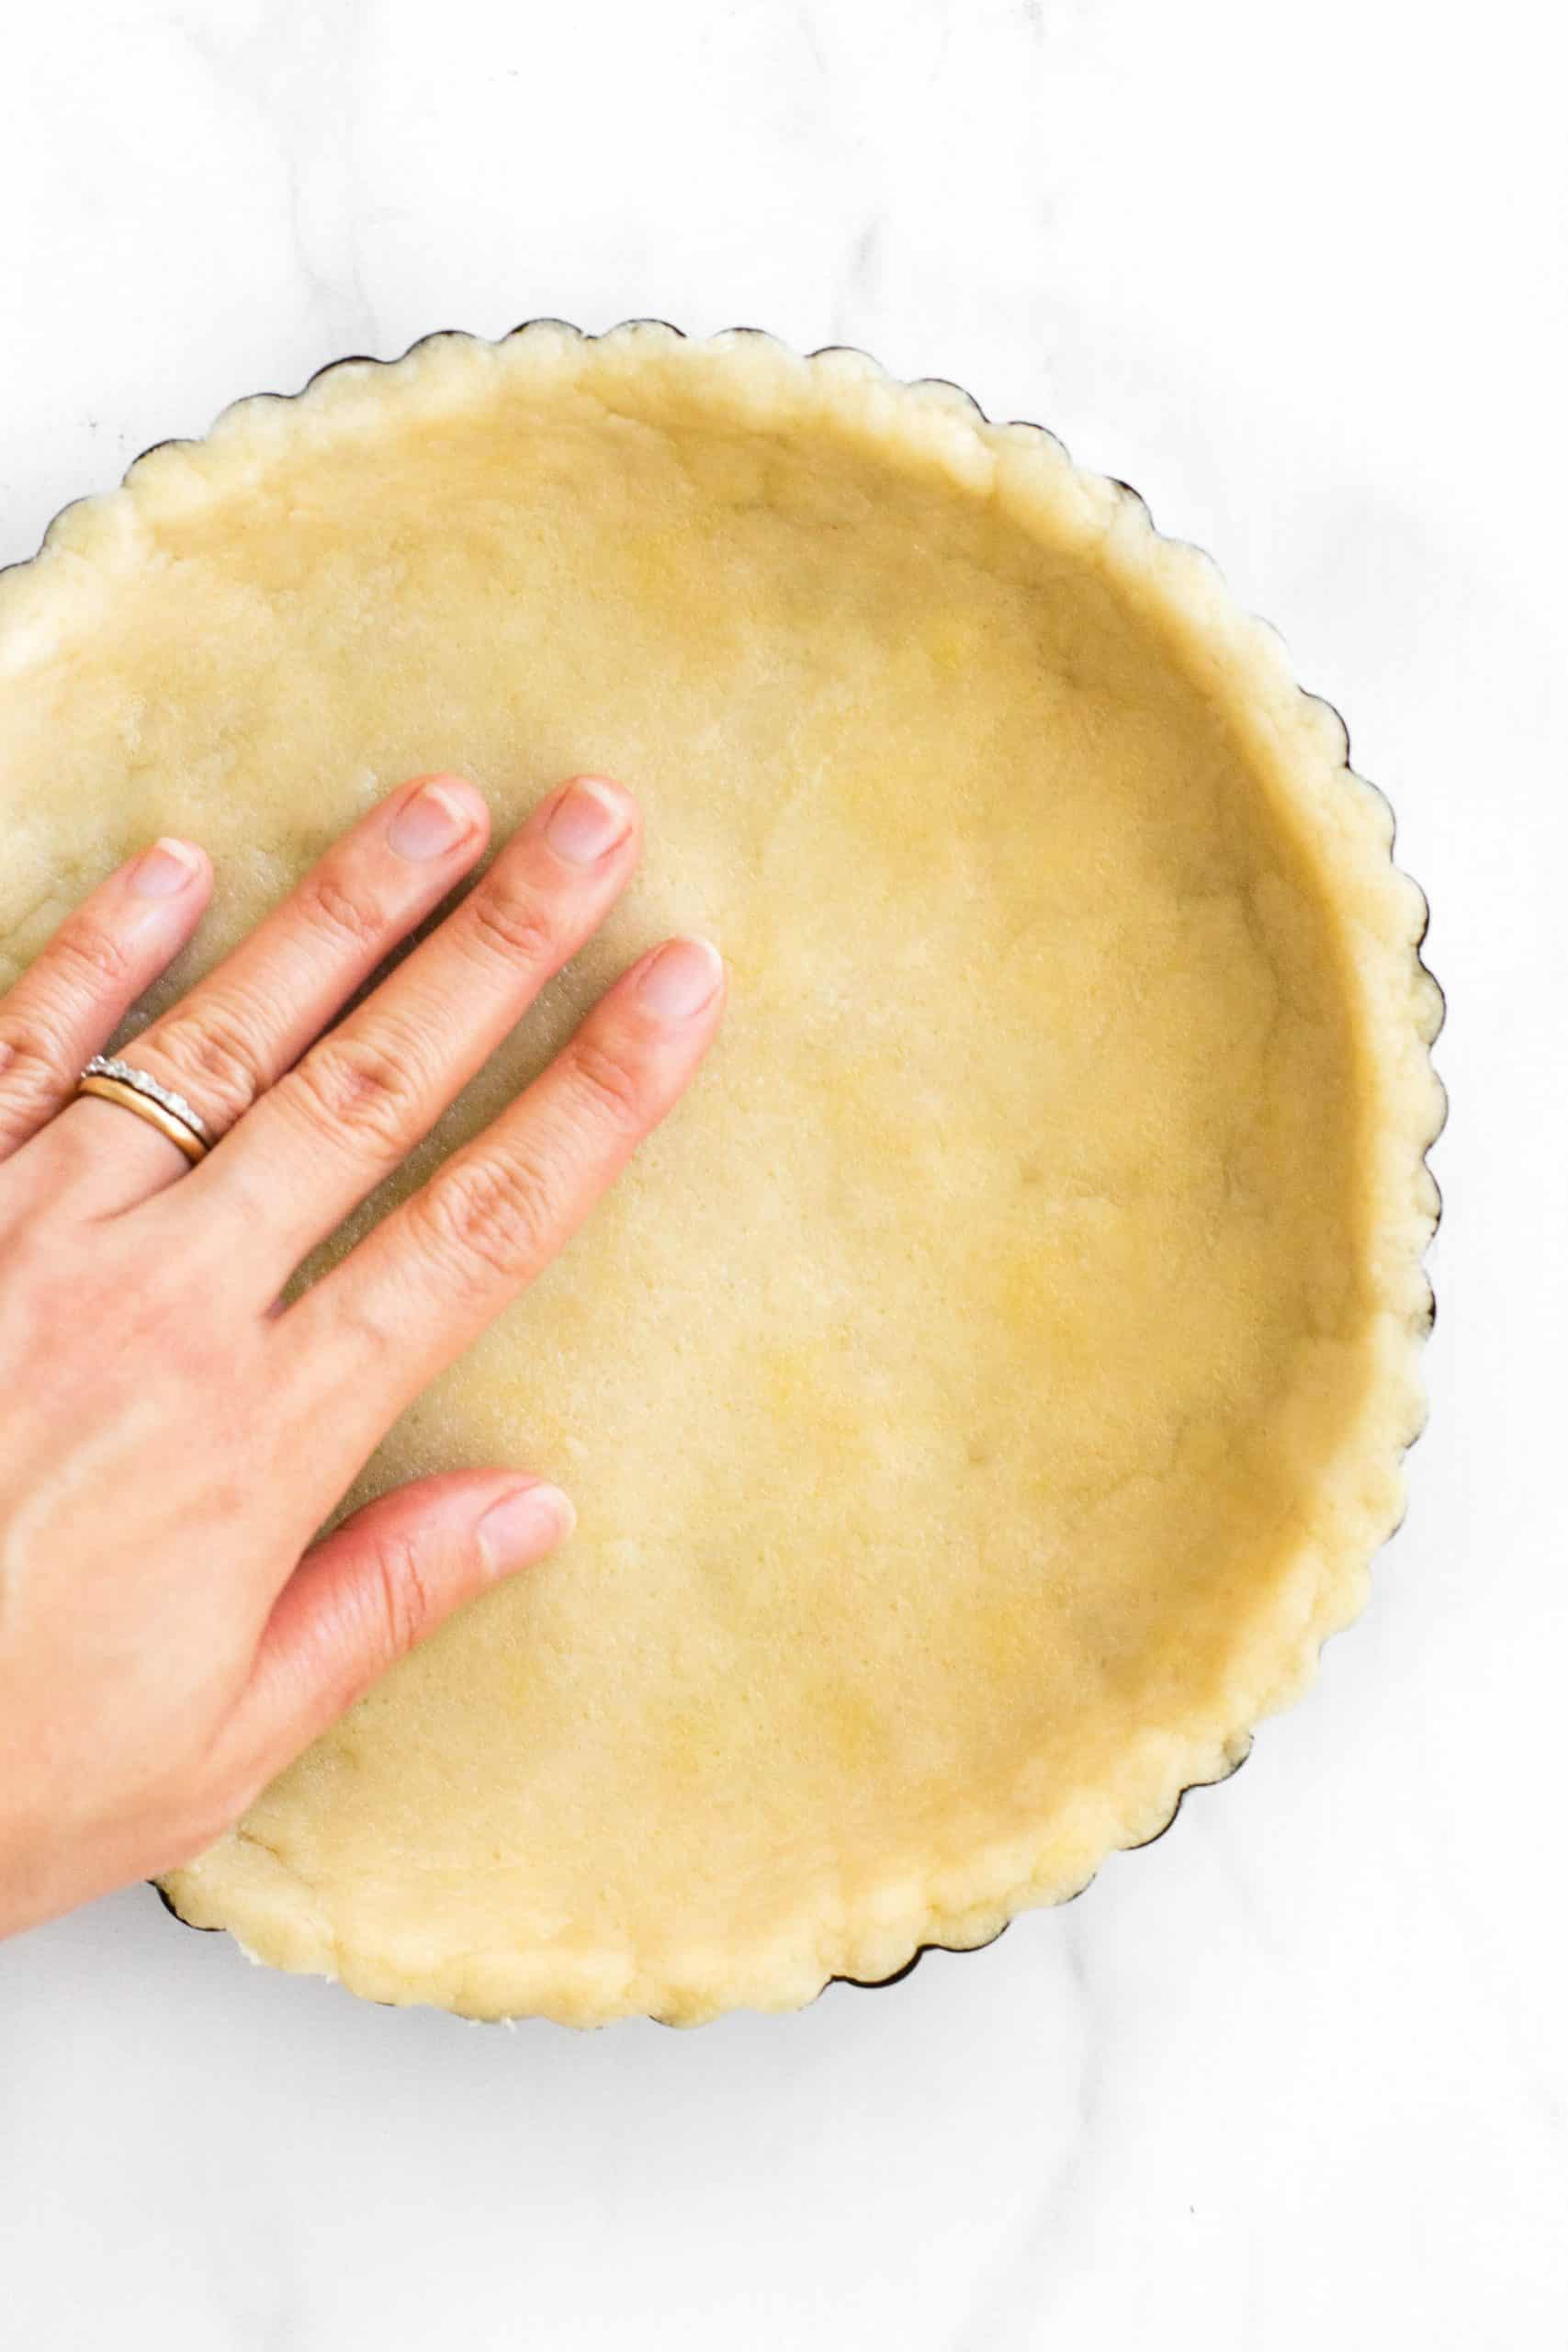 Pressing pie crust dough into a pie pan.